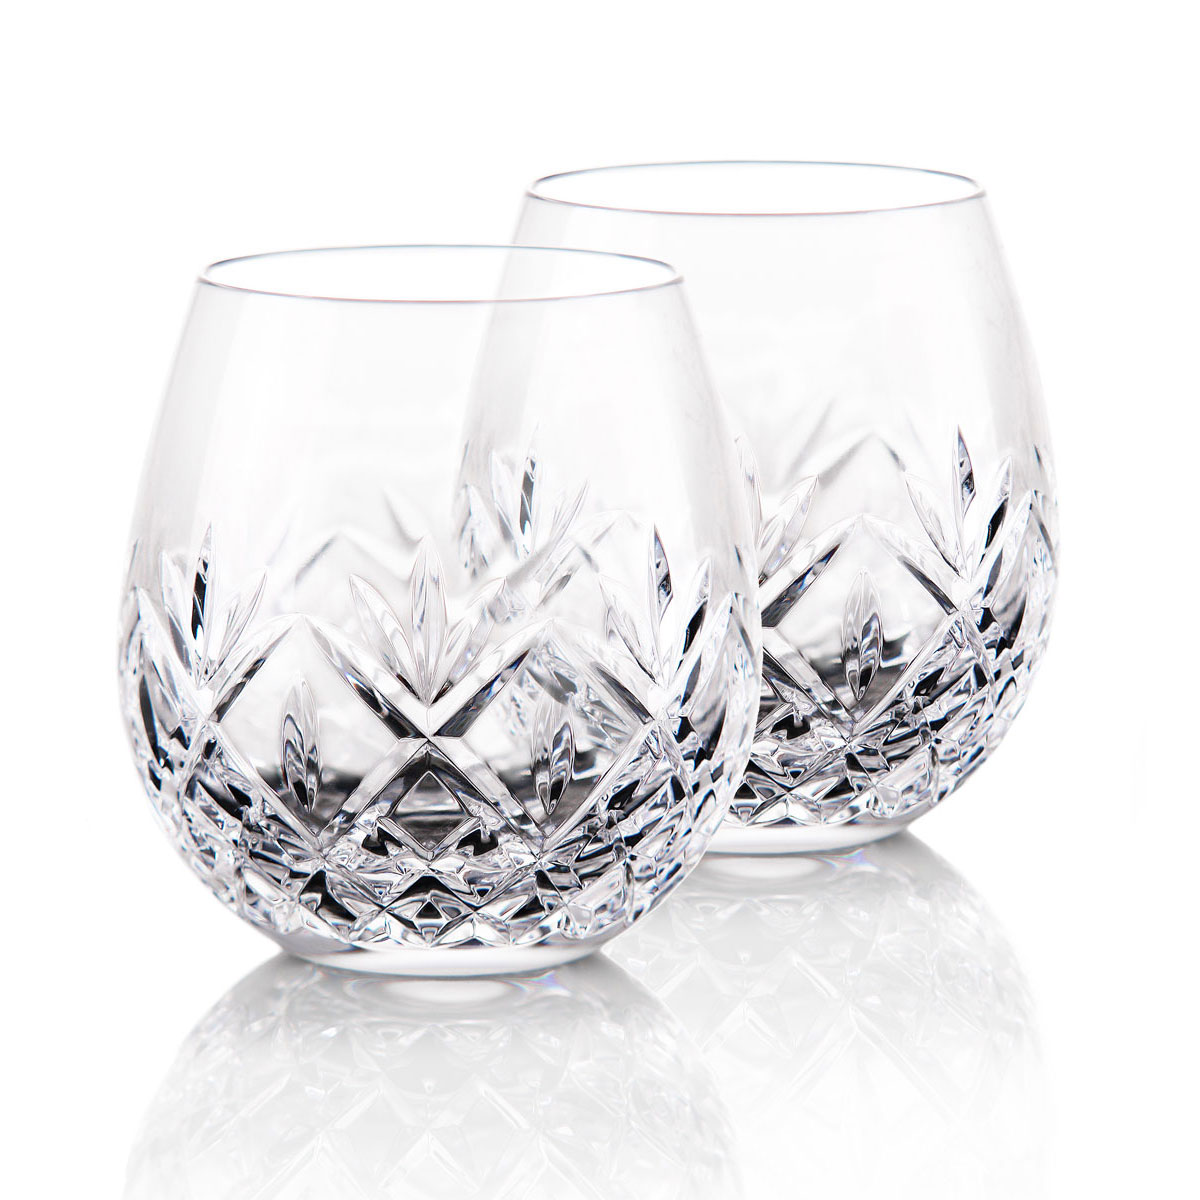 Waterford Huntley Stemless Red Wine Glasses, Pair